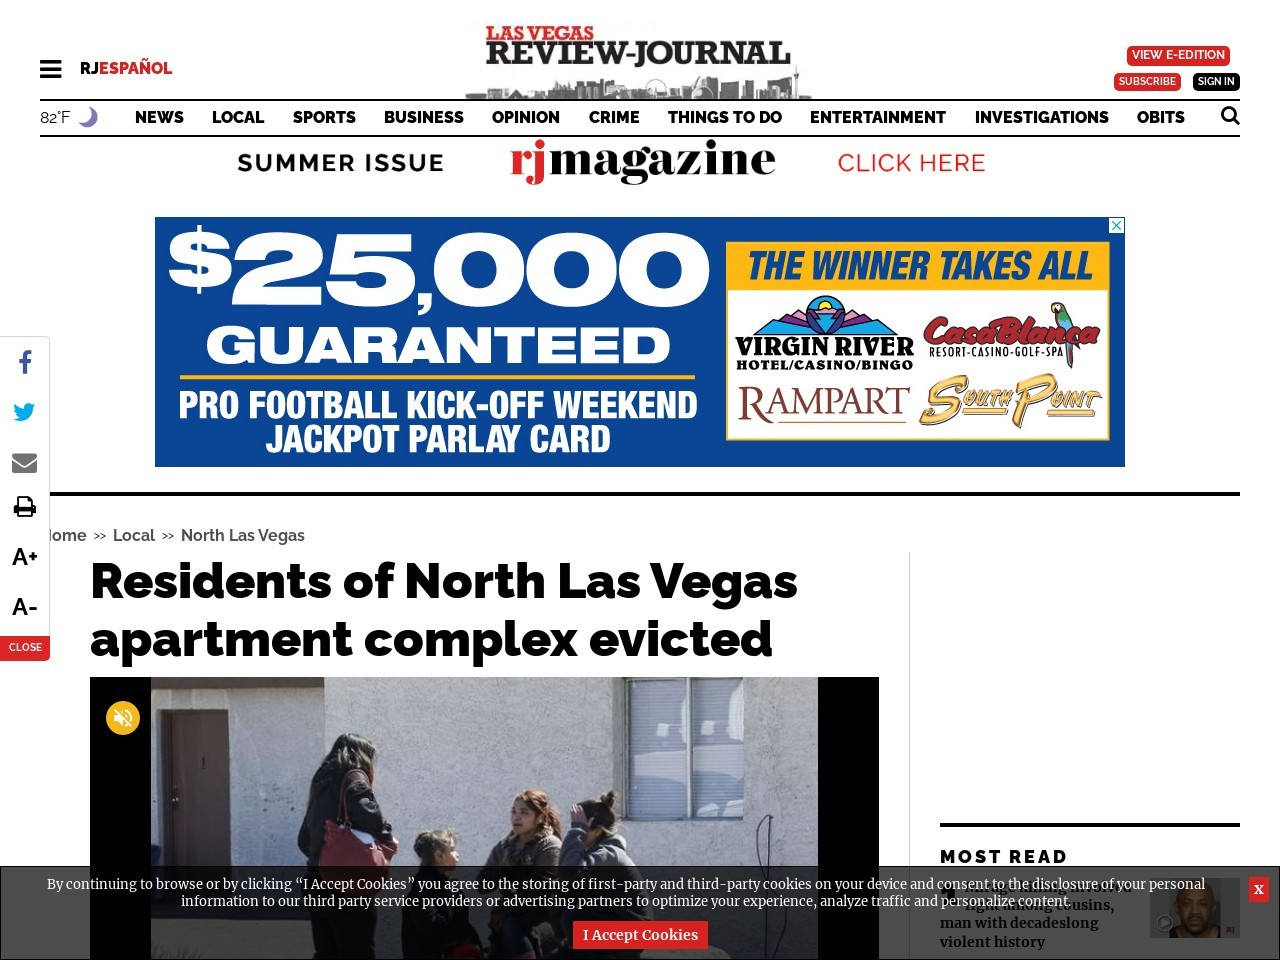 Residents of North Las Vegas apartment complex evicted